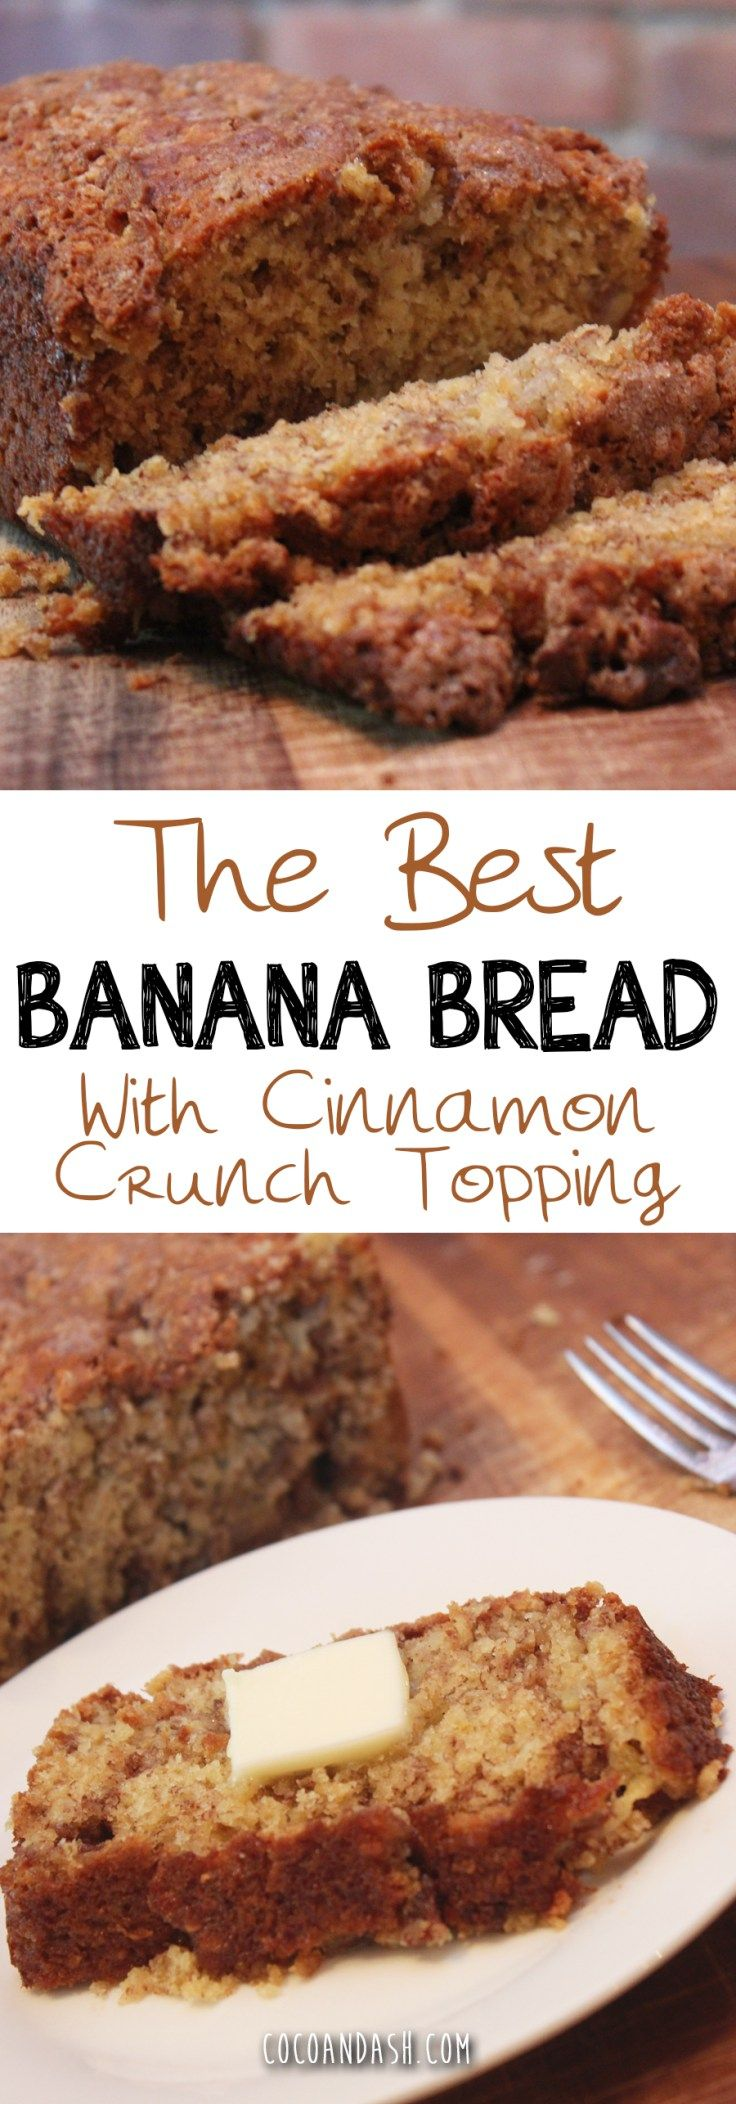 The Best Banana Bread - of course with some substitutions